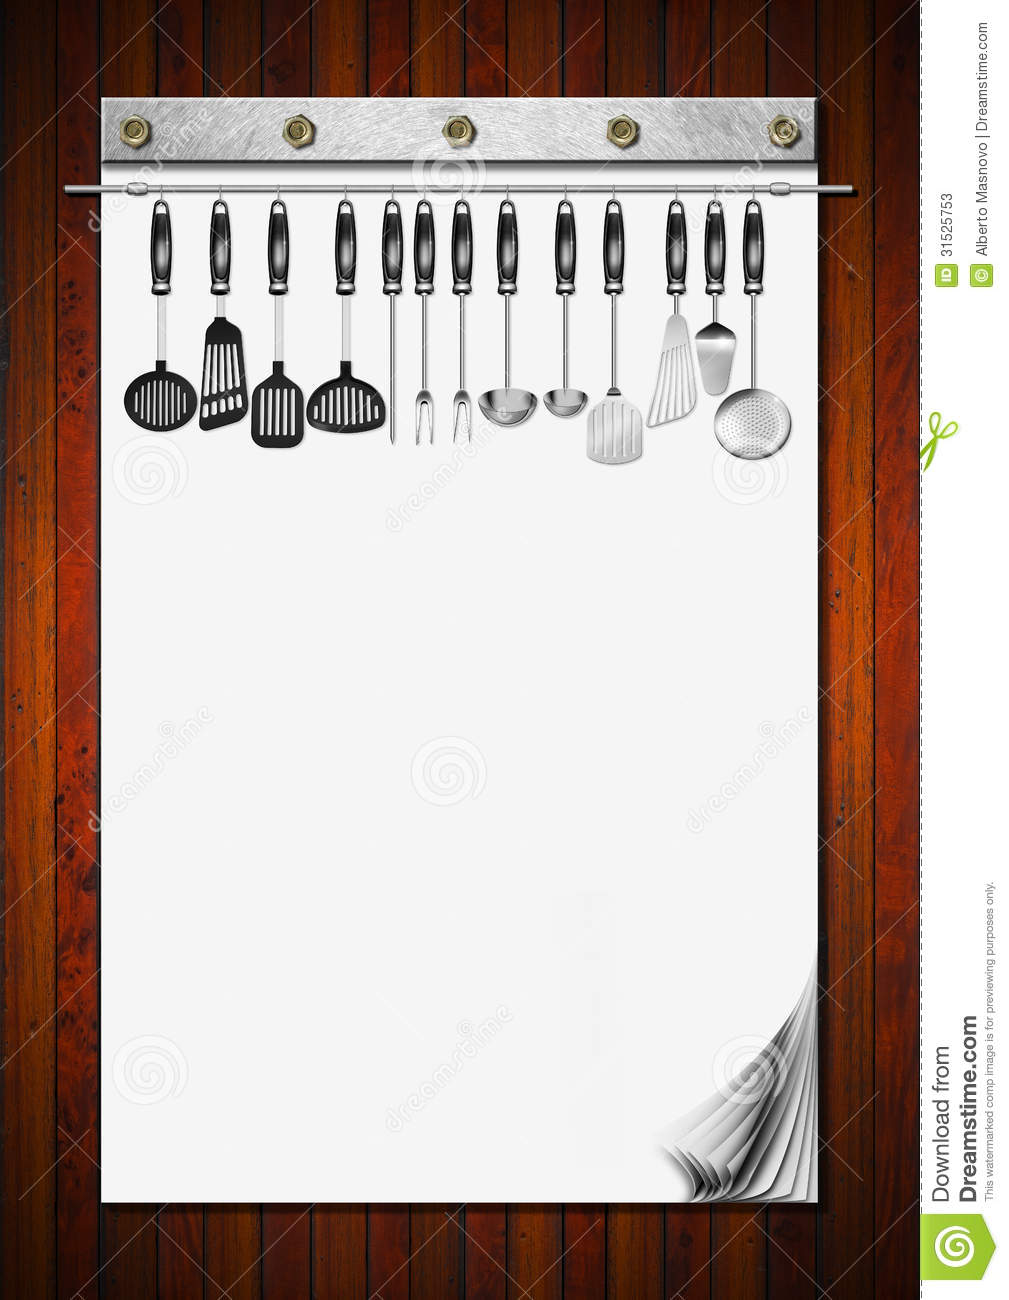 Blank Kitchen Wall Need An Easy Fix For A Blank Wall Add A Wall Of Shutters But Now